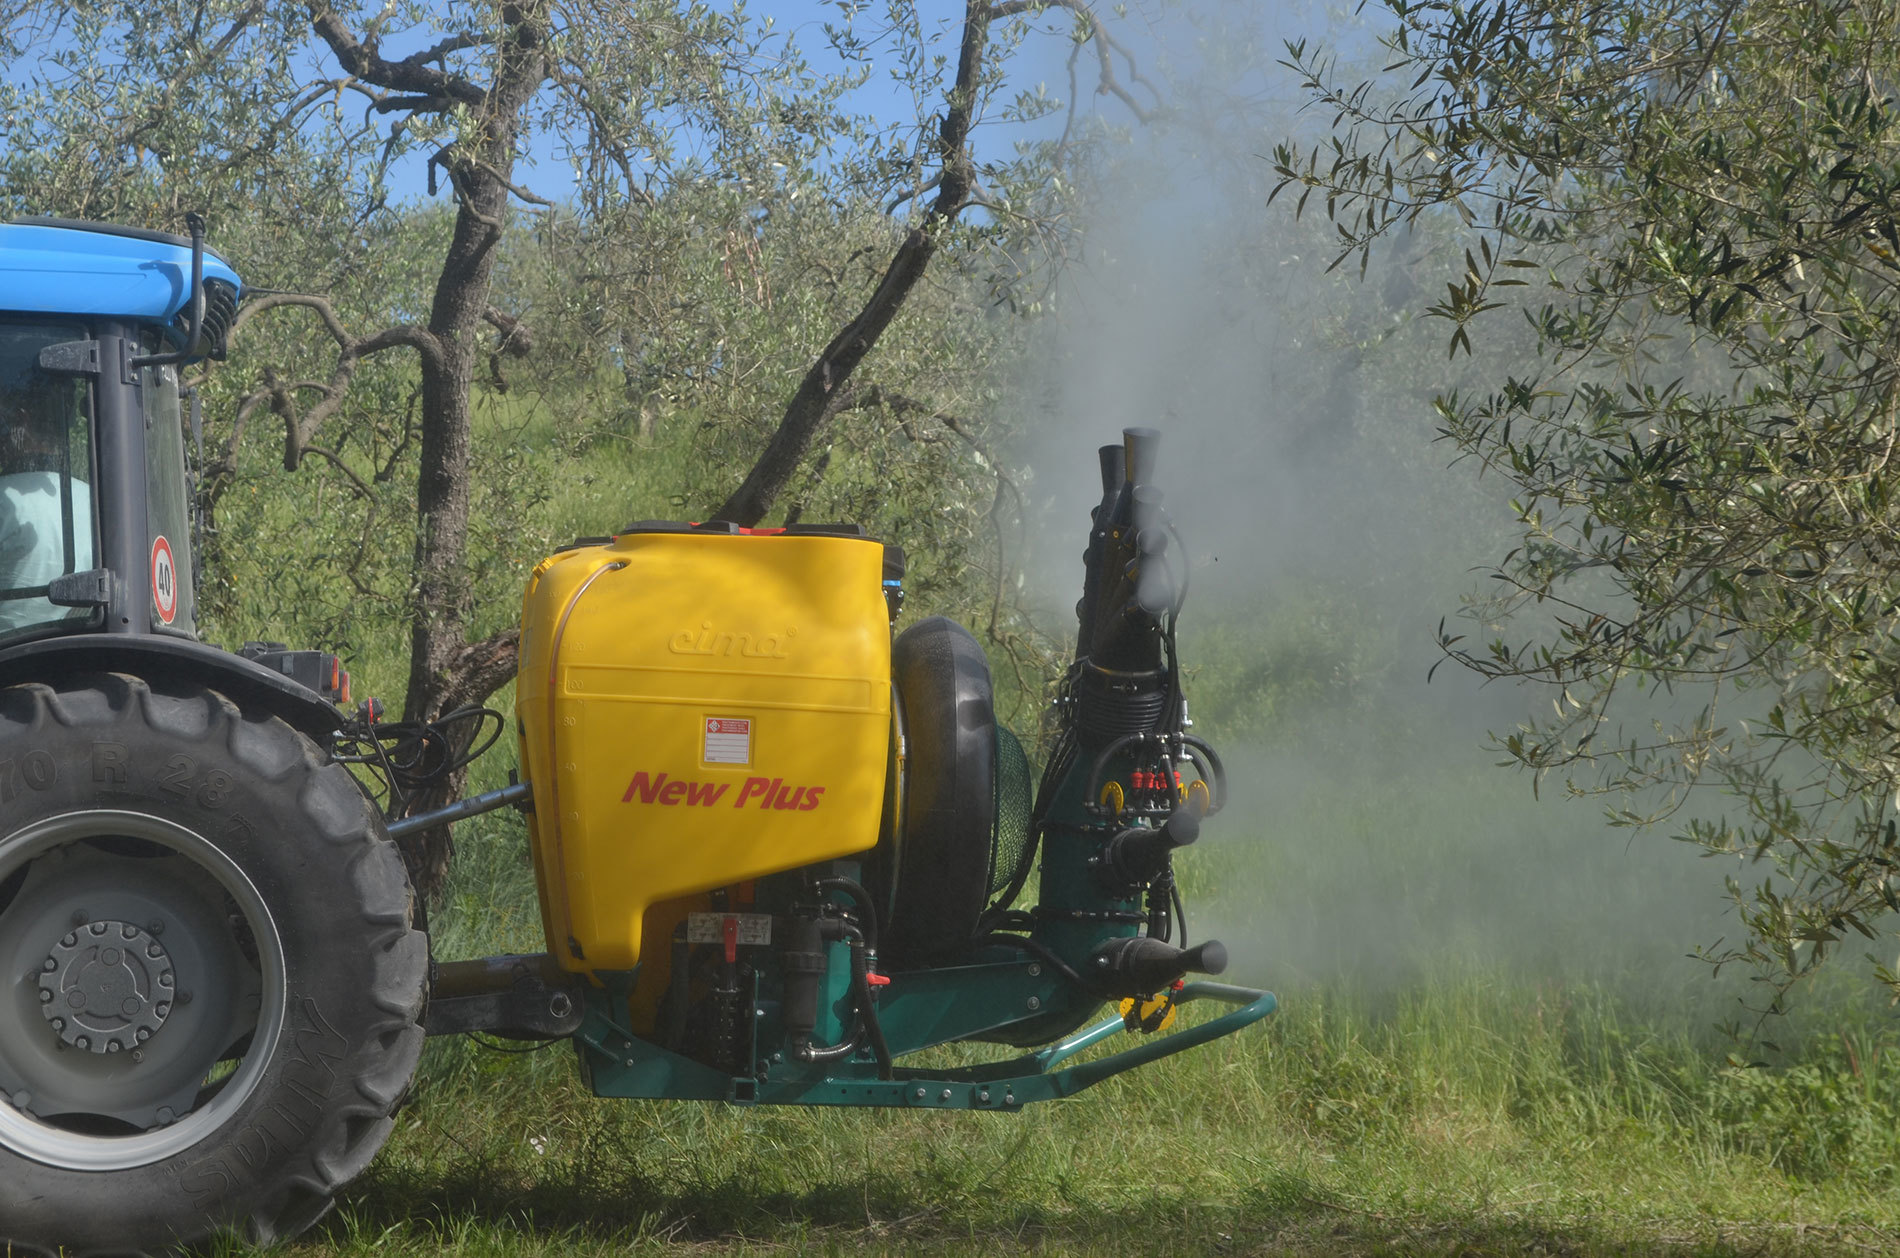 3-point mounted Sprayer New Plus - 4 lower cannons and upper double Olive sprayhead